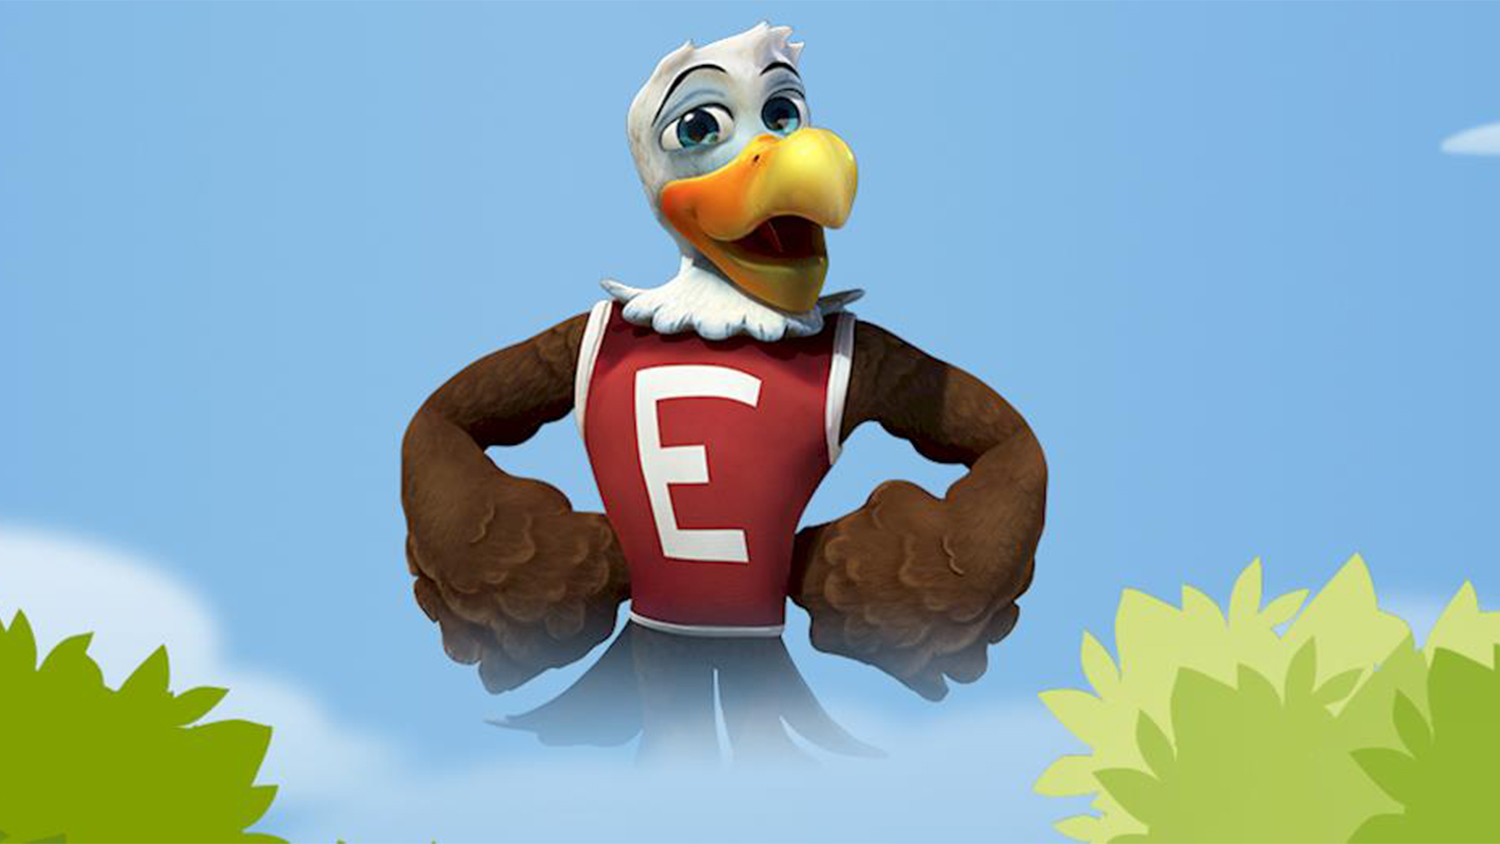 Eddie Eagle GunSafe® Program Reaches 31 Million Children!